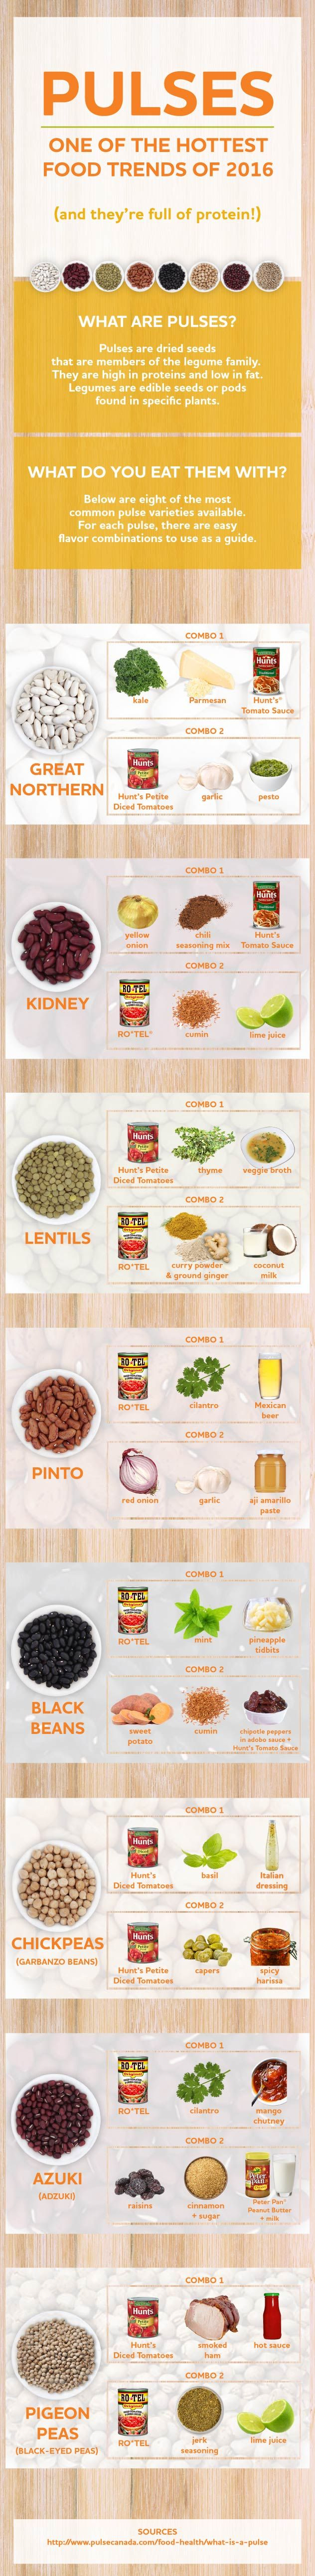 "The term ""pulses"" is new to me, but the legumes this group comprises are familiar. Click through for a chart that lists some compatible flavor combinations."